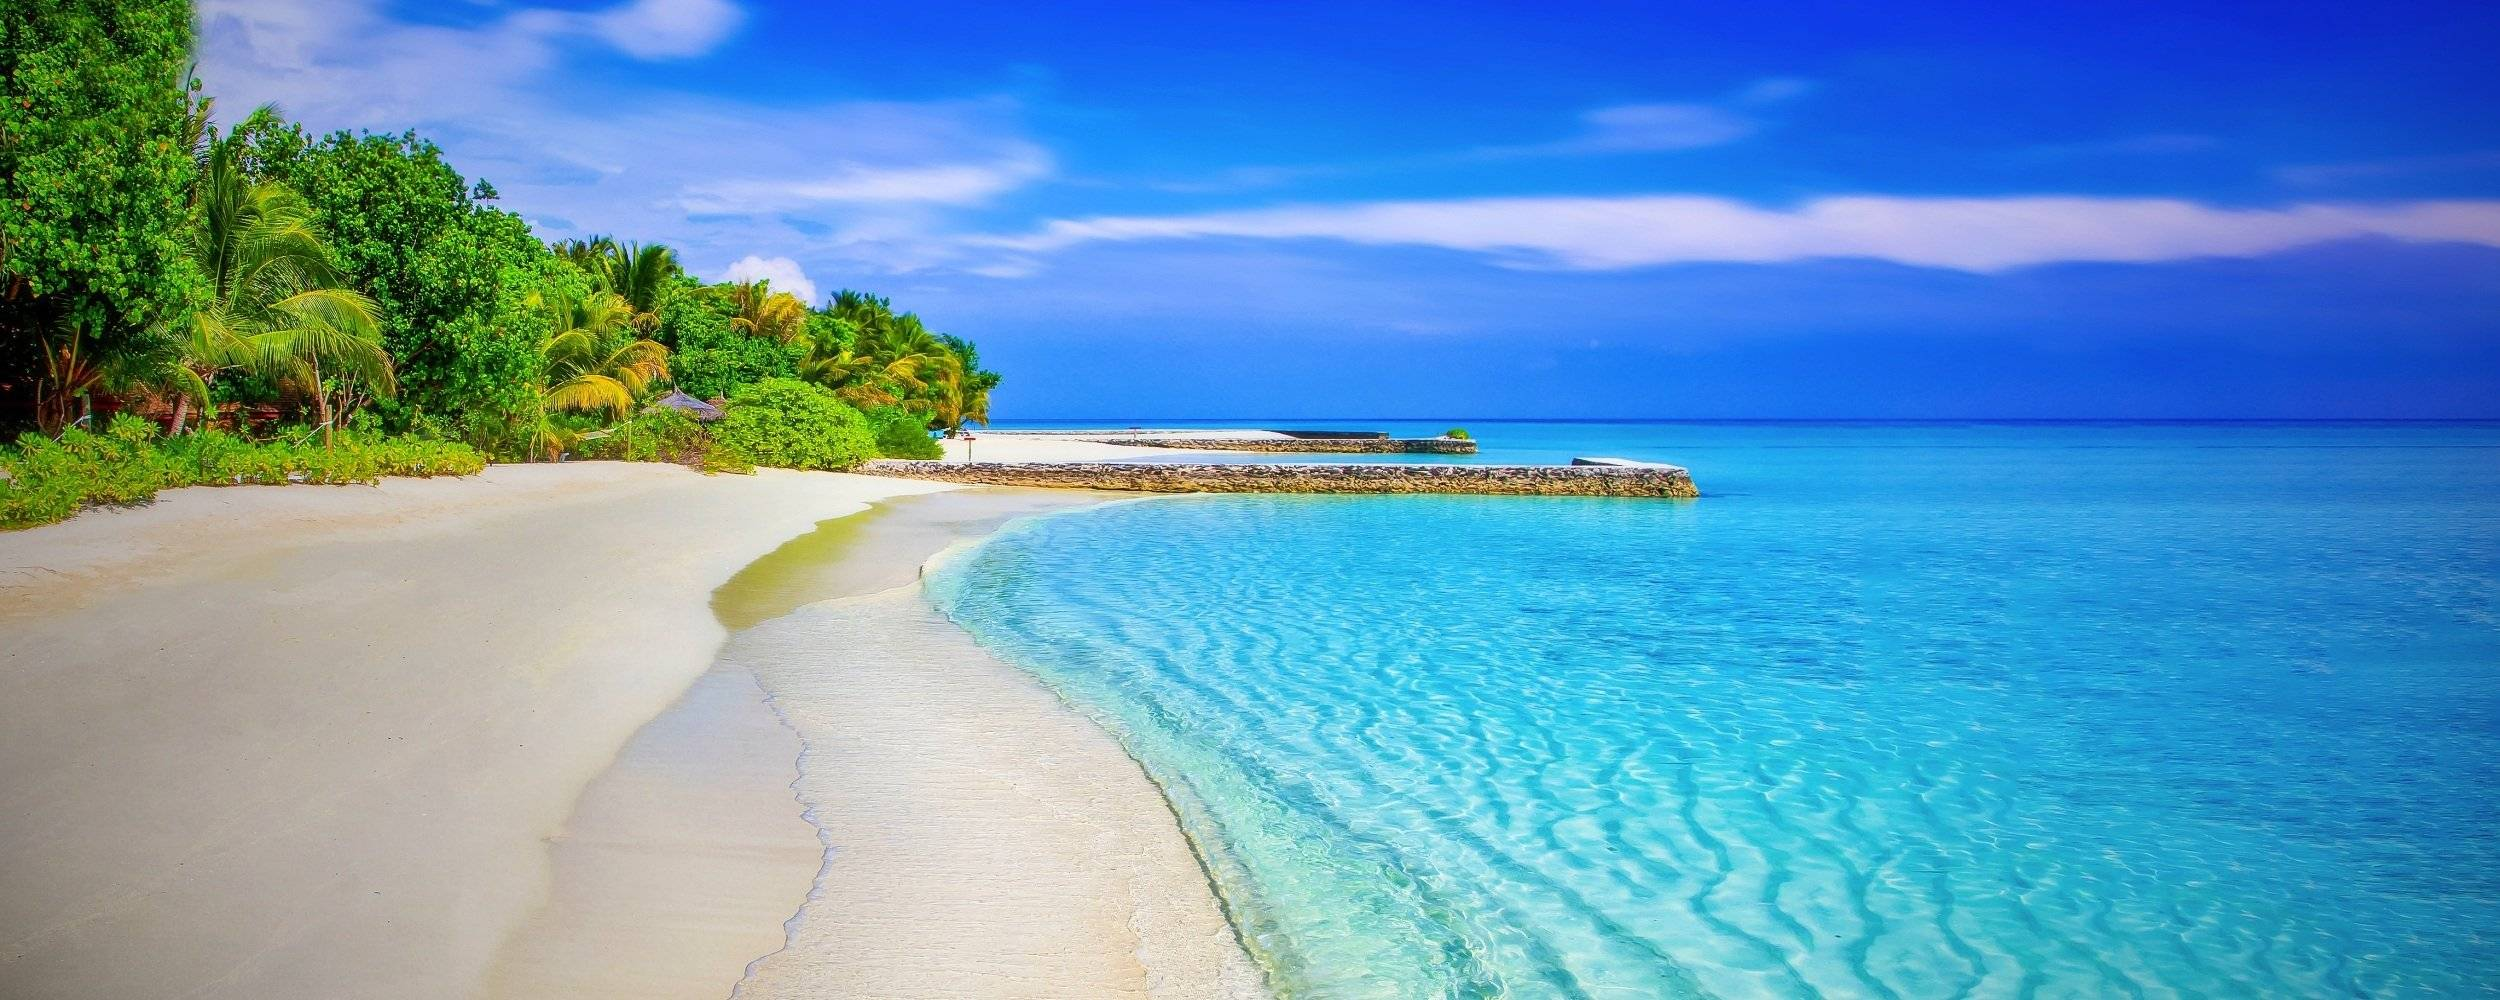 Top 20 Best Tropical Islands According To The Expert In The World 2021